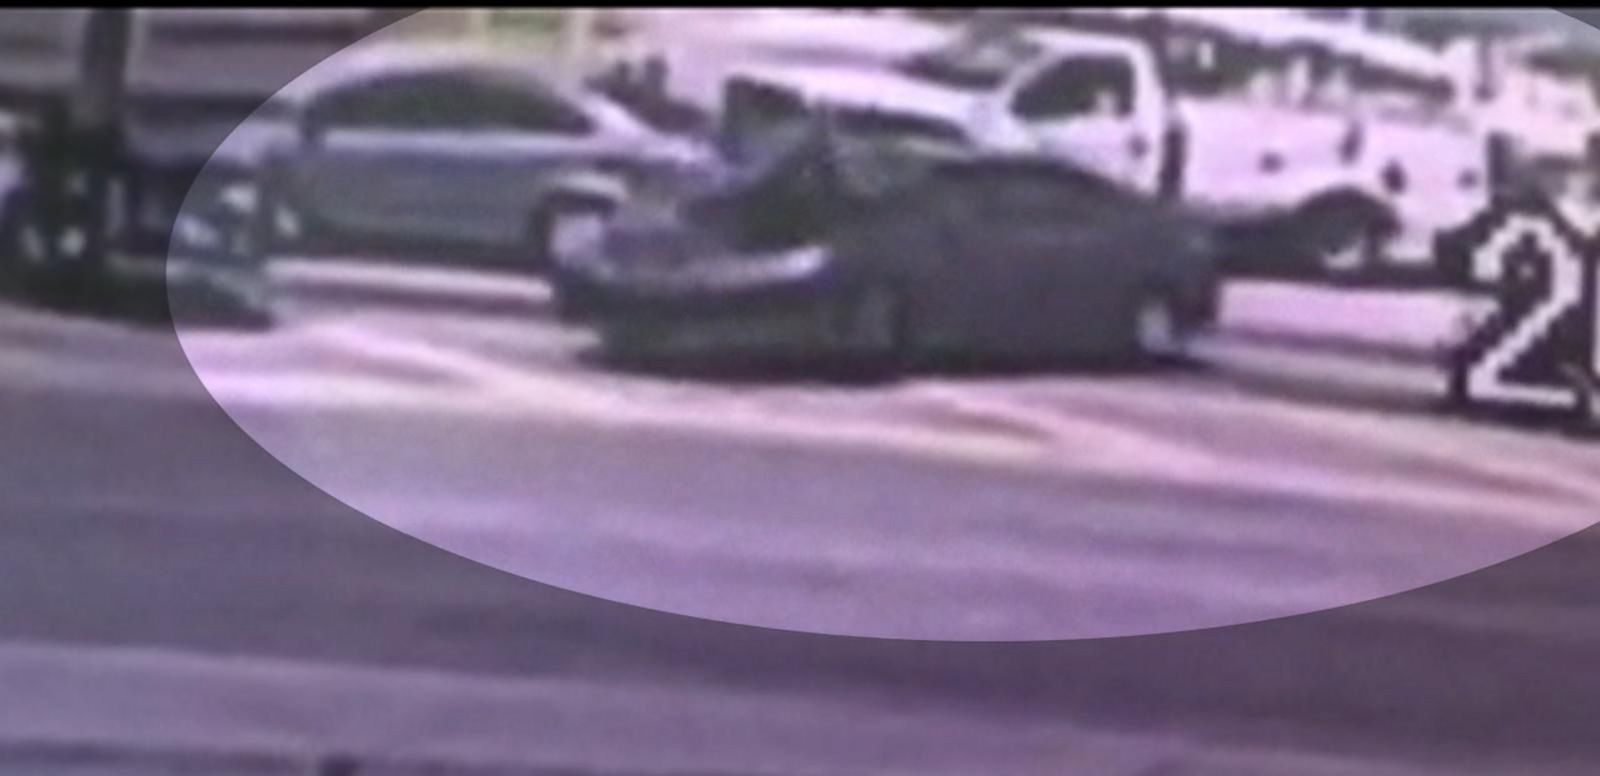 VIDEO: Video Shows FL Police Officer Allegedly Shooting Driver of SUV